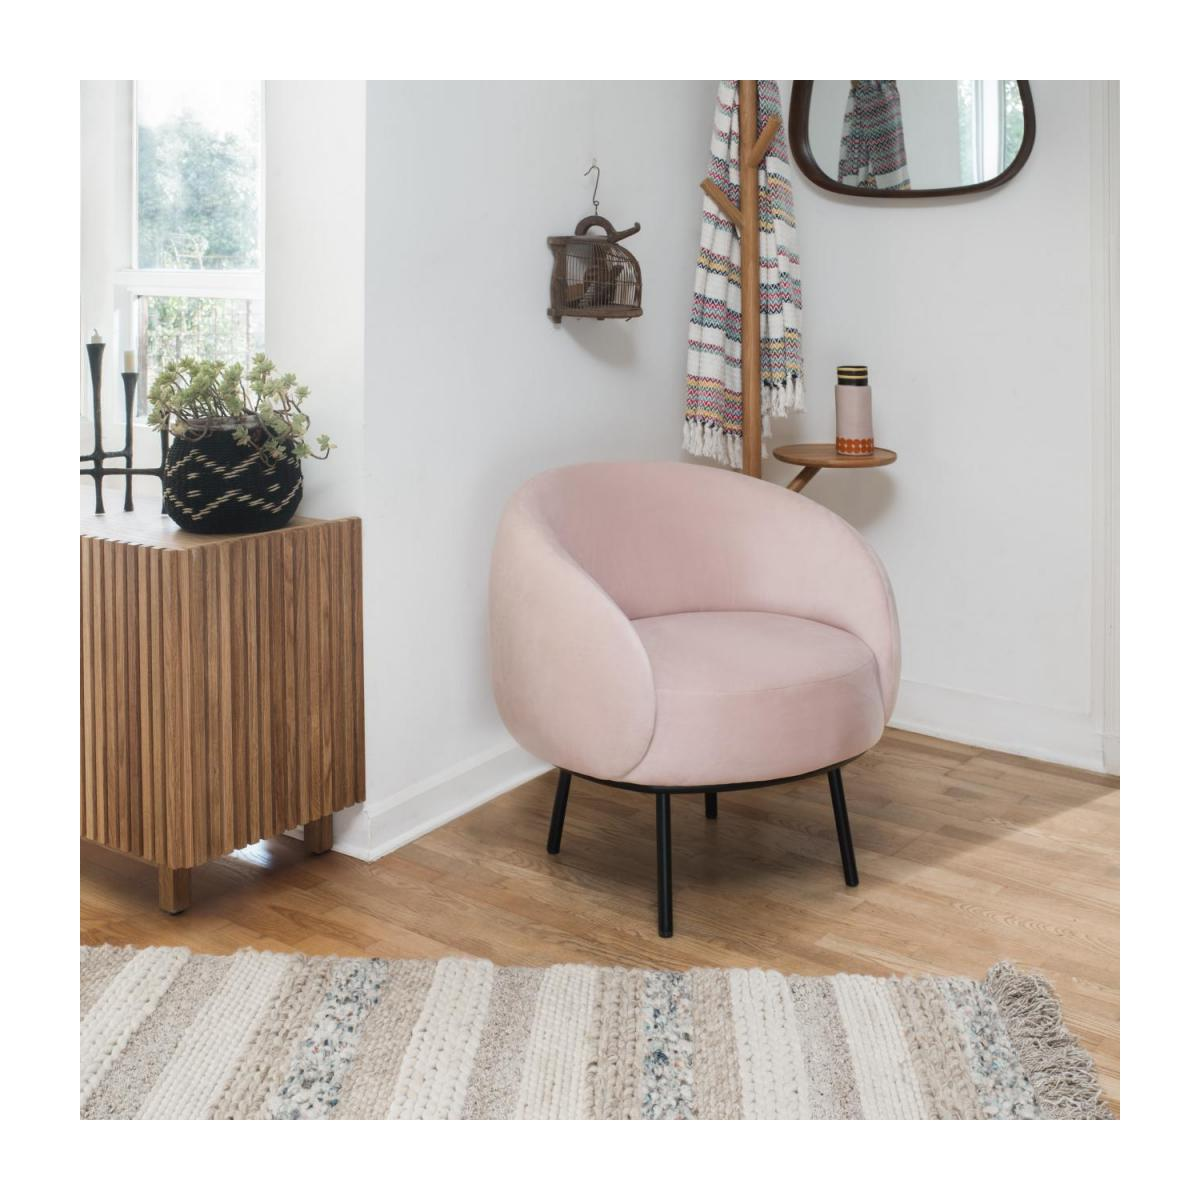 Fauteuil en velours - Rose - Design by Adrien Carvès n°2